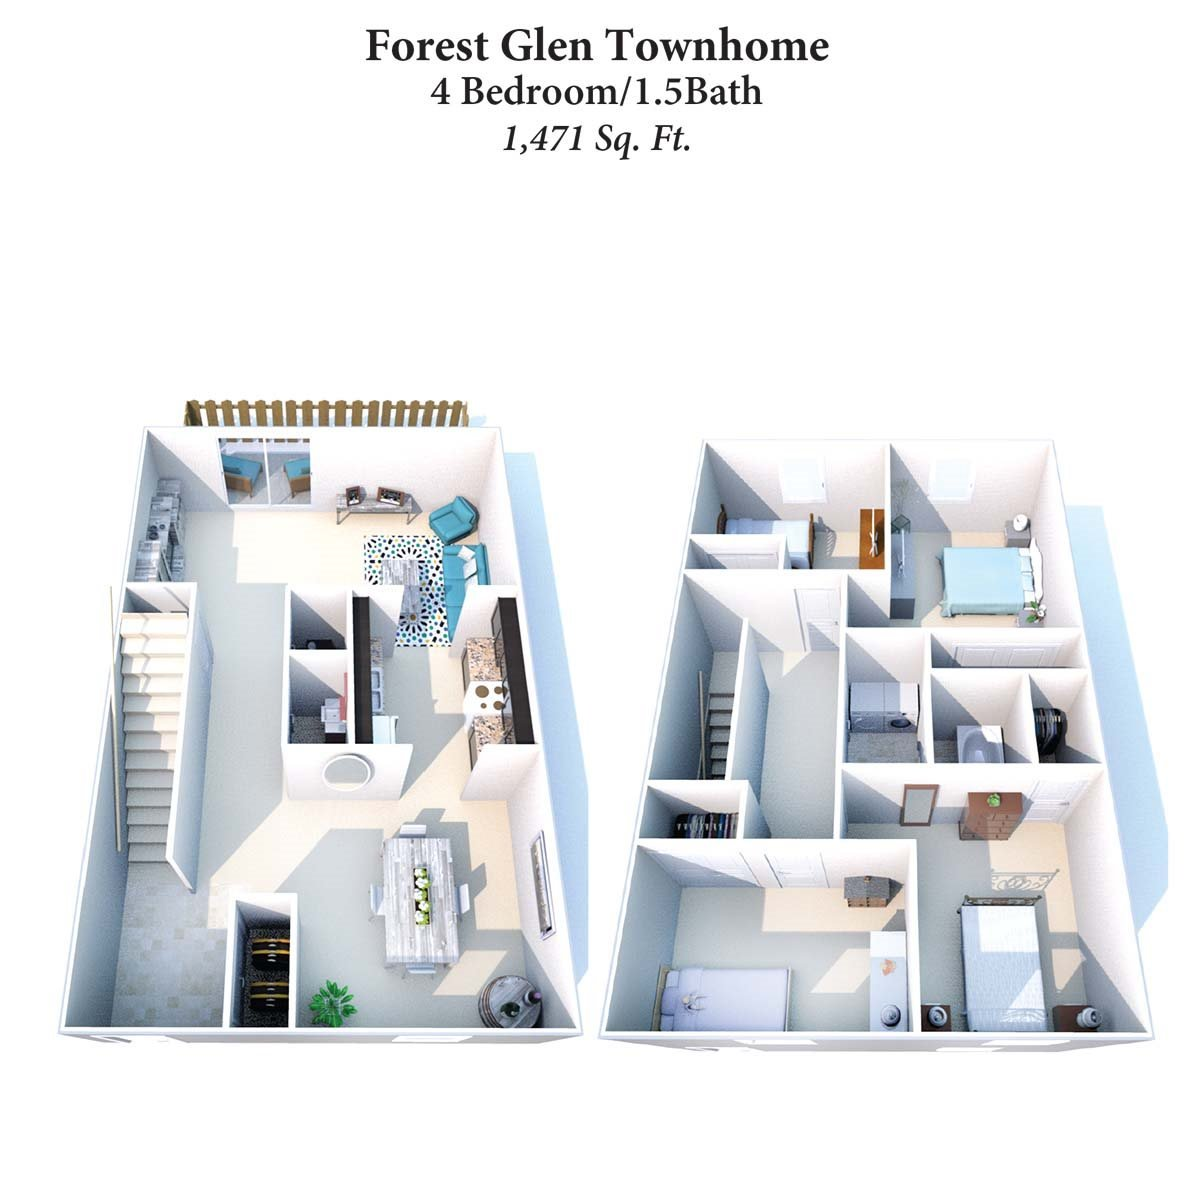 4B/1.5B Forest Glen Townhome 1,471SqFt Floor Plan 13